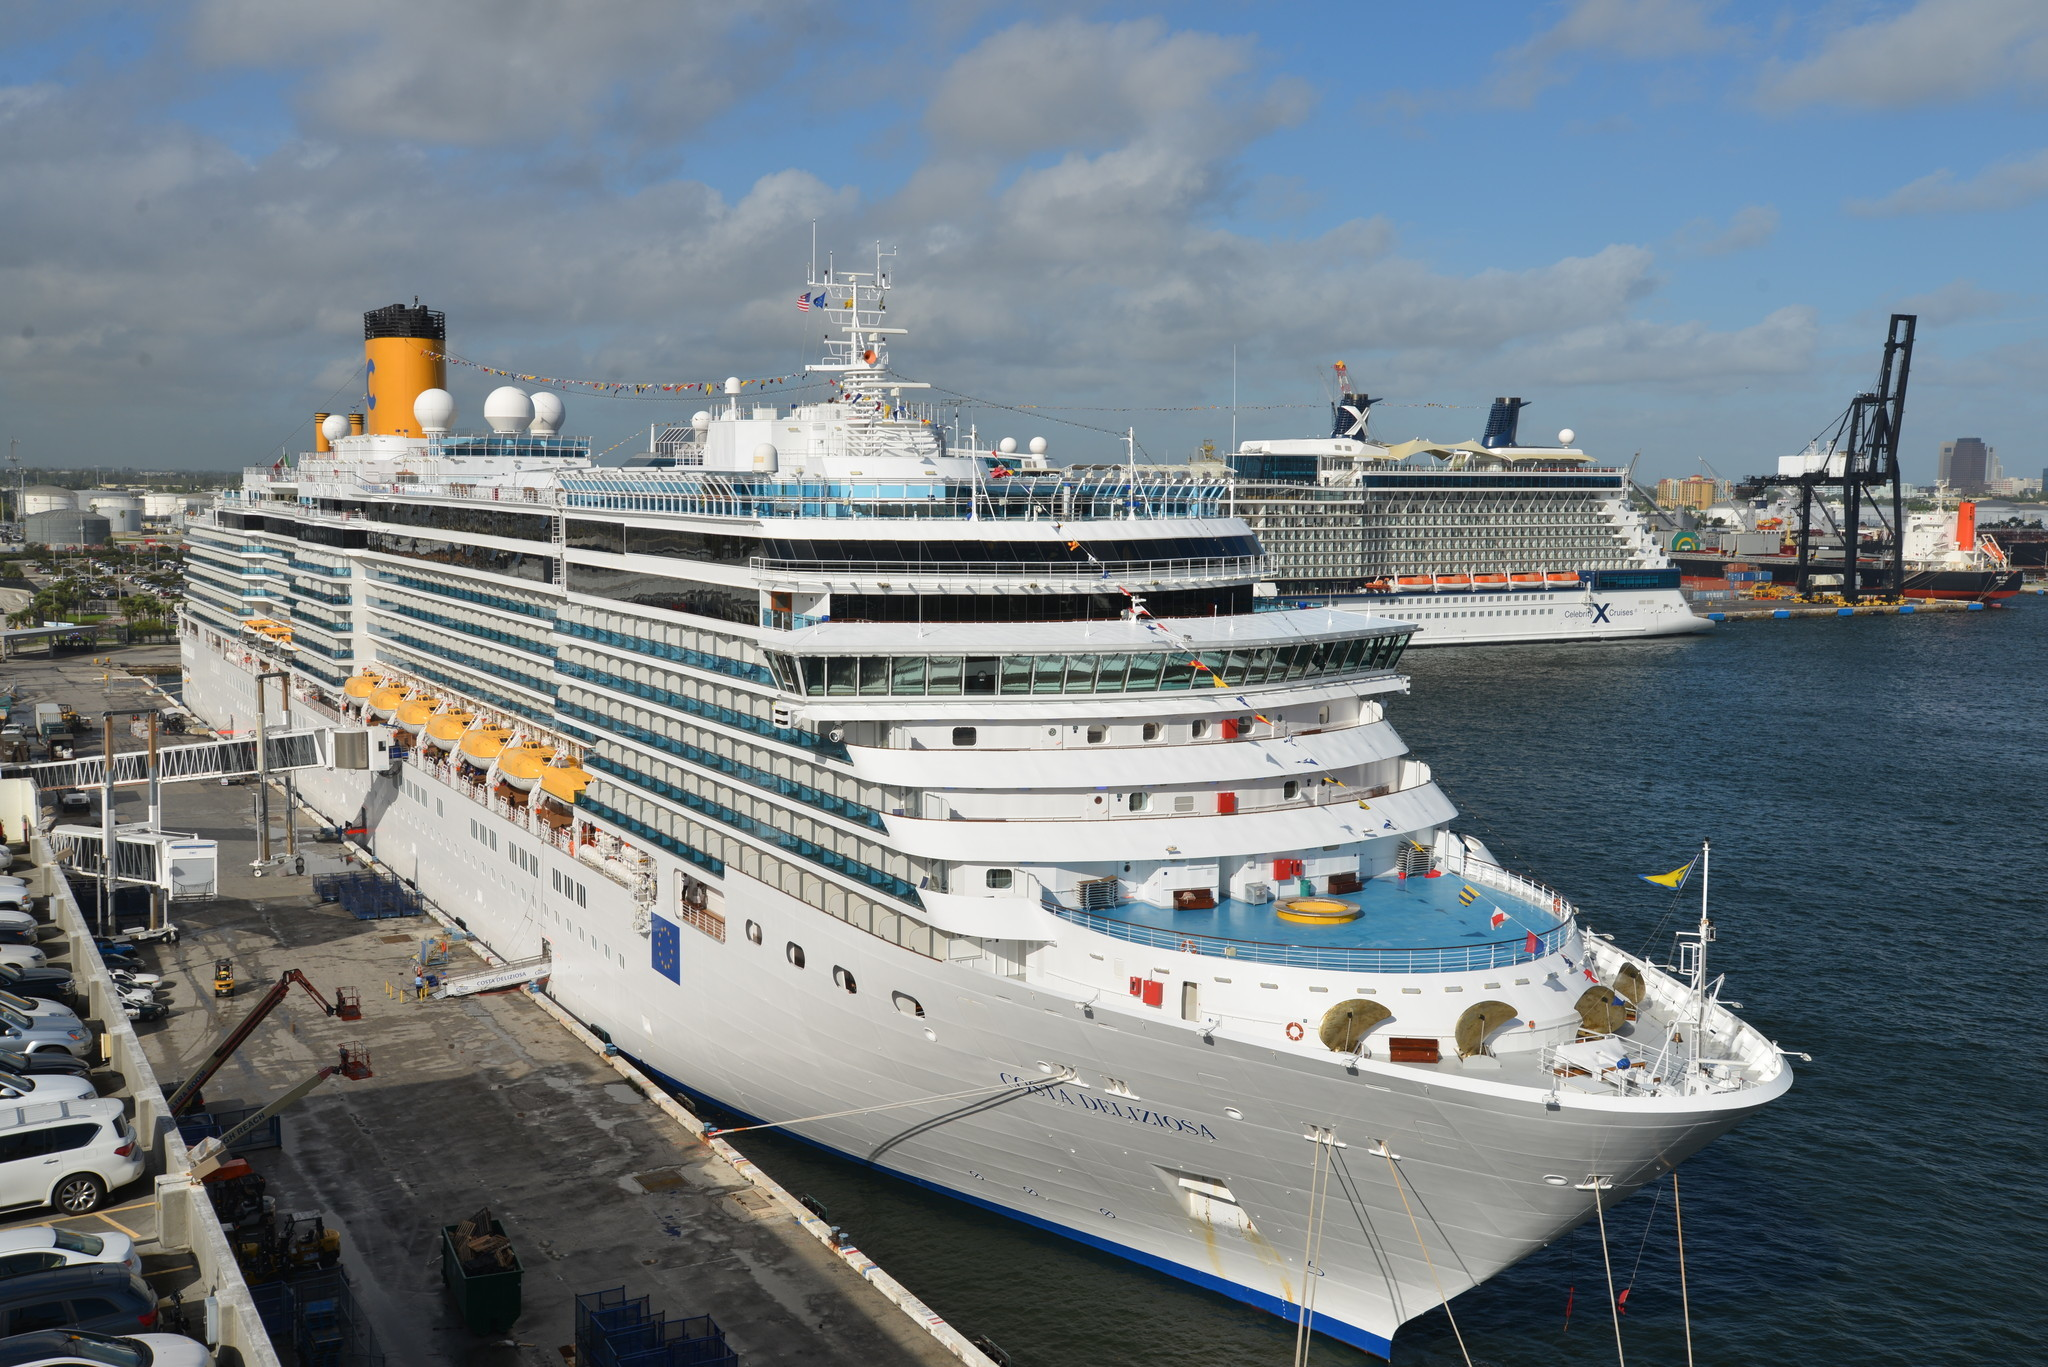 A Costa Cruises Cruise Ship Returns To Port Everglades After 4-year Hiatus - Orlando Sentinel